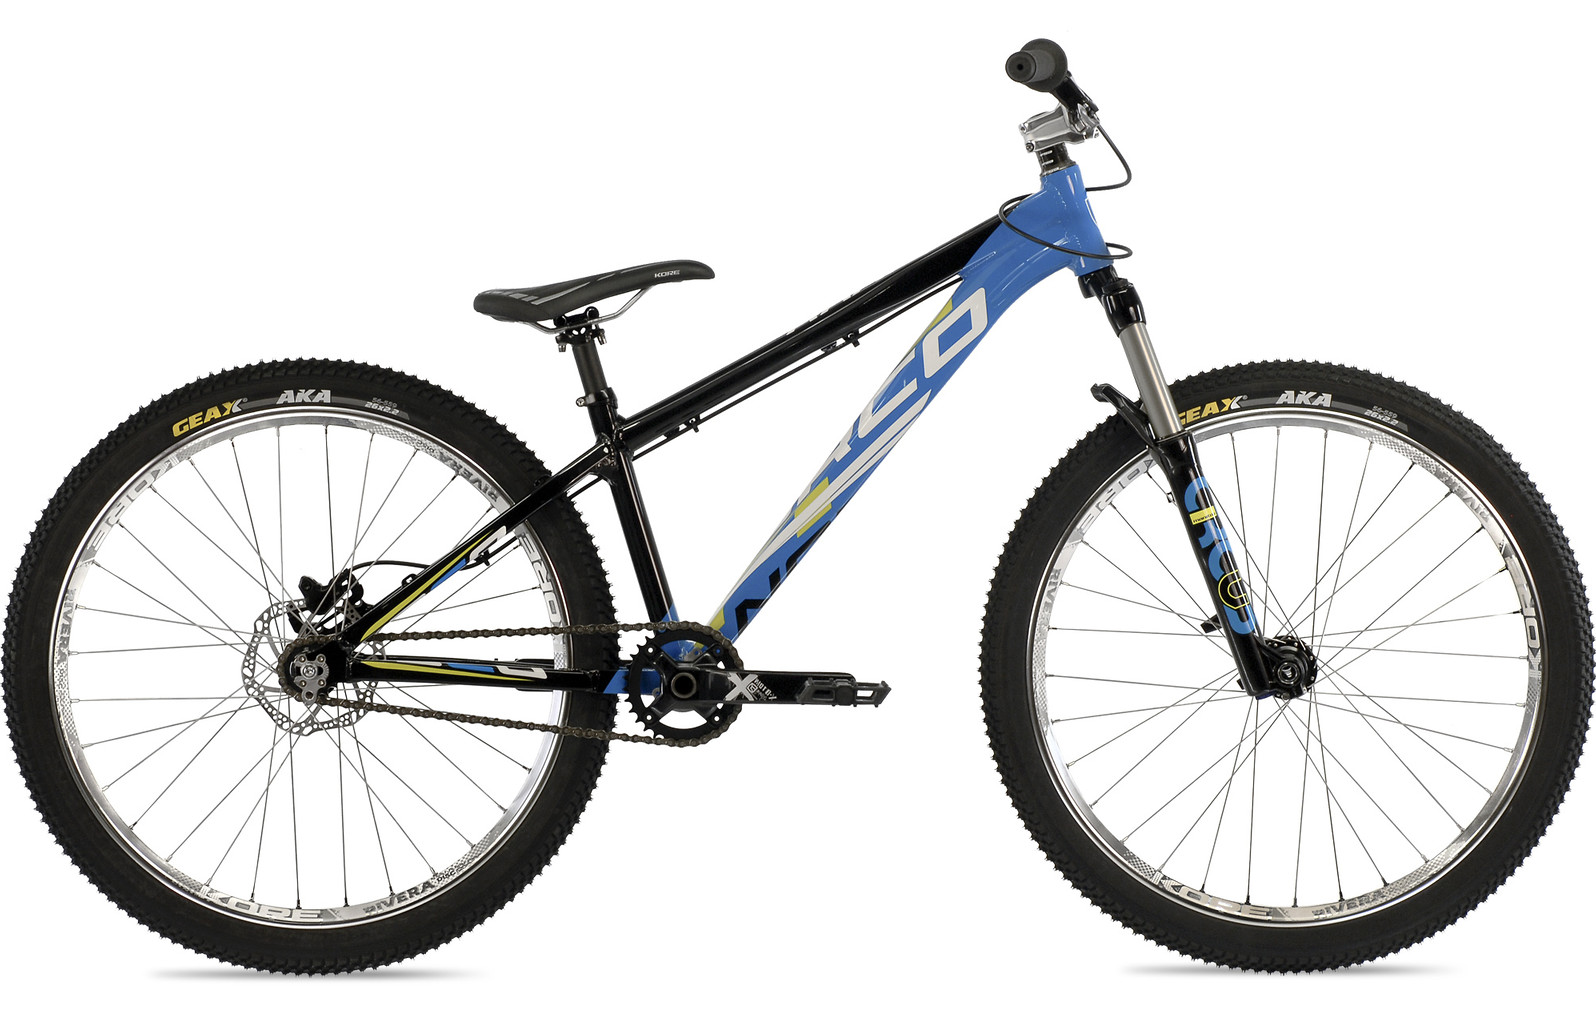 bike - 2014 Norco Rampage 6.1